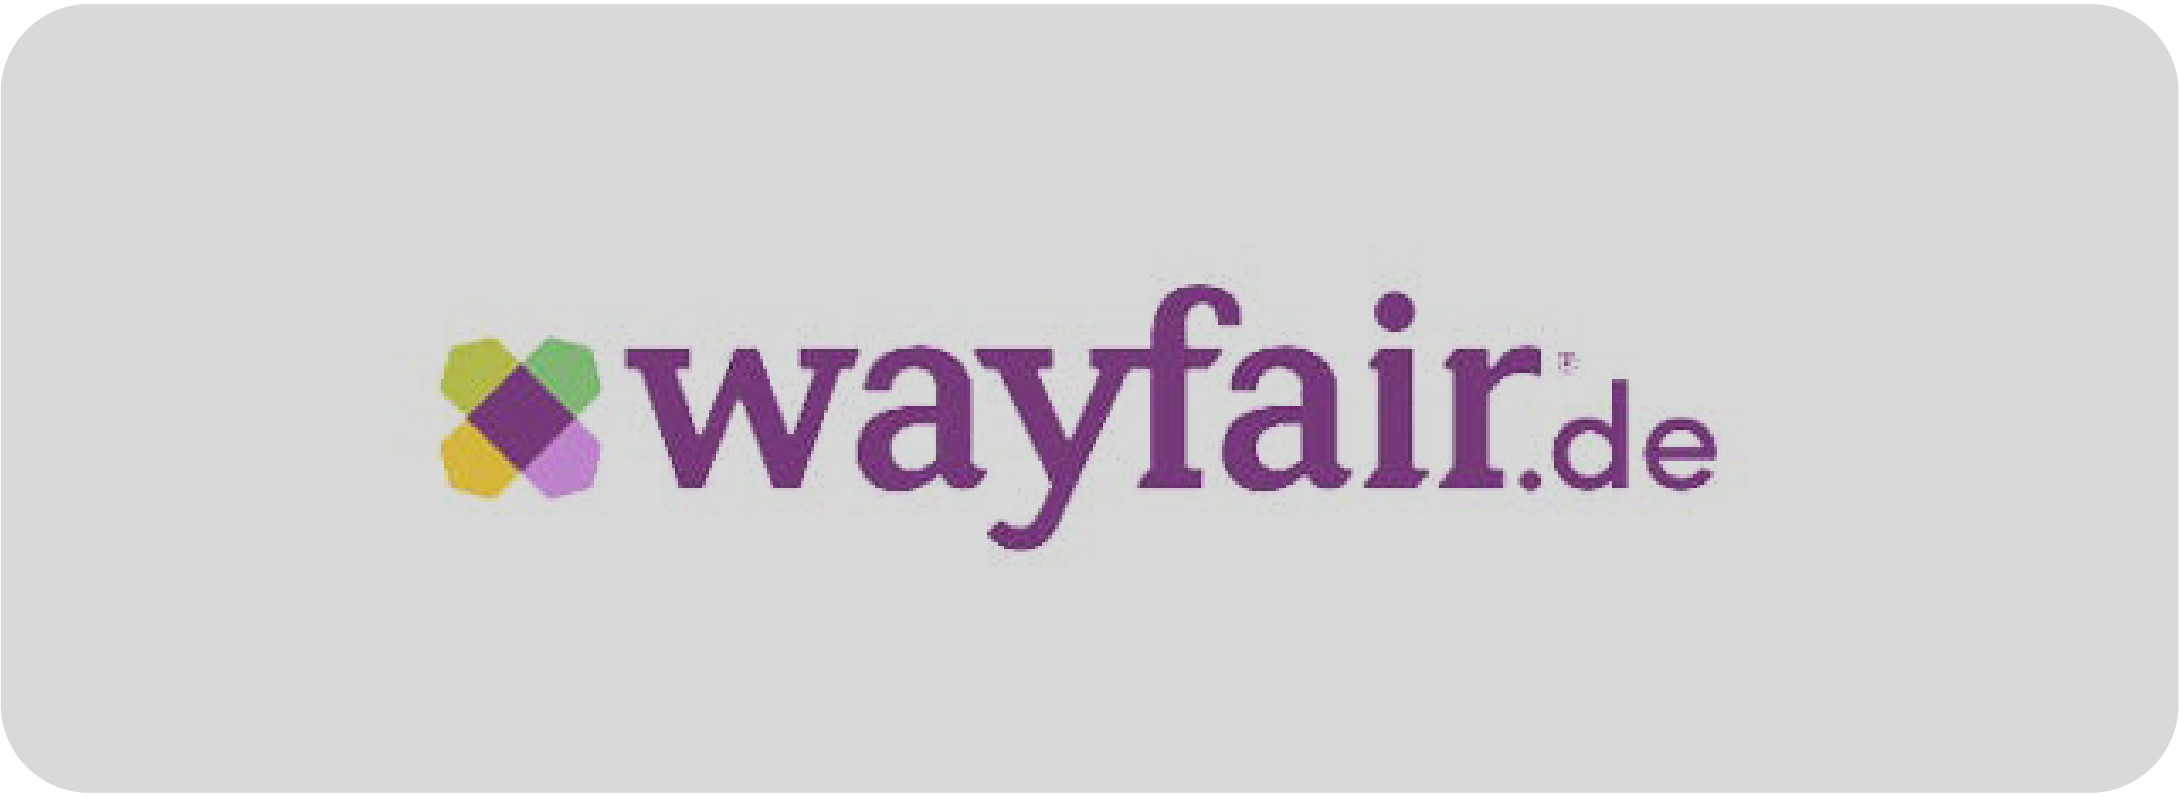 Connected Group Ltd Website Assets_Wayfair de.png